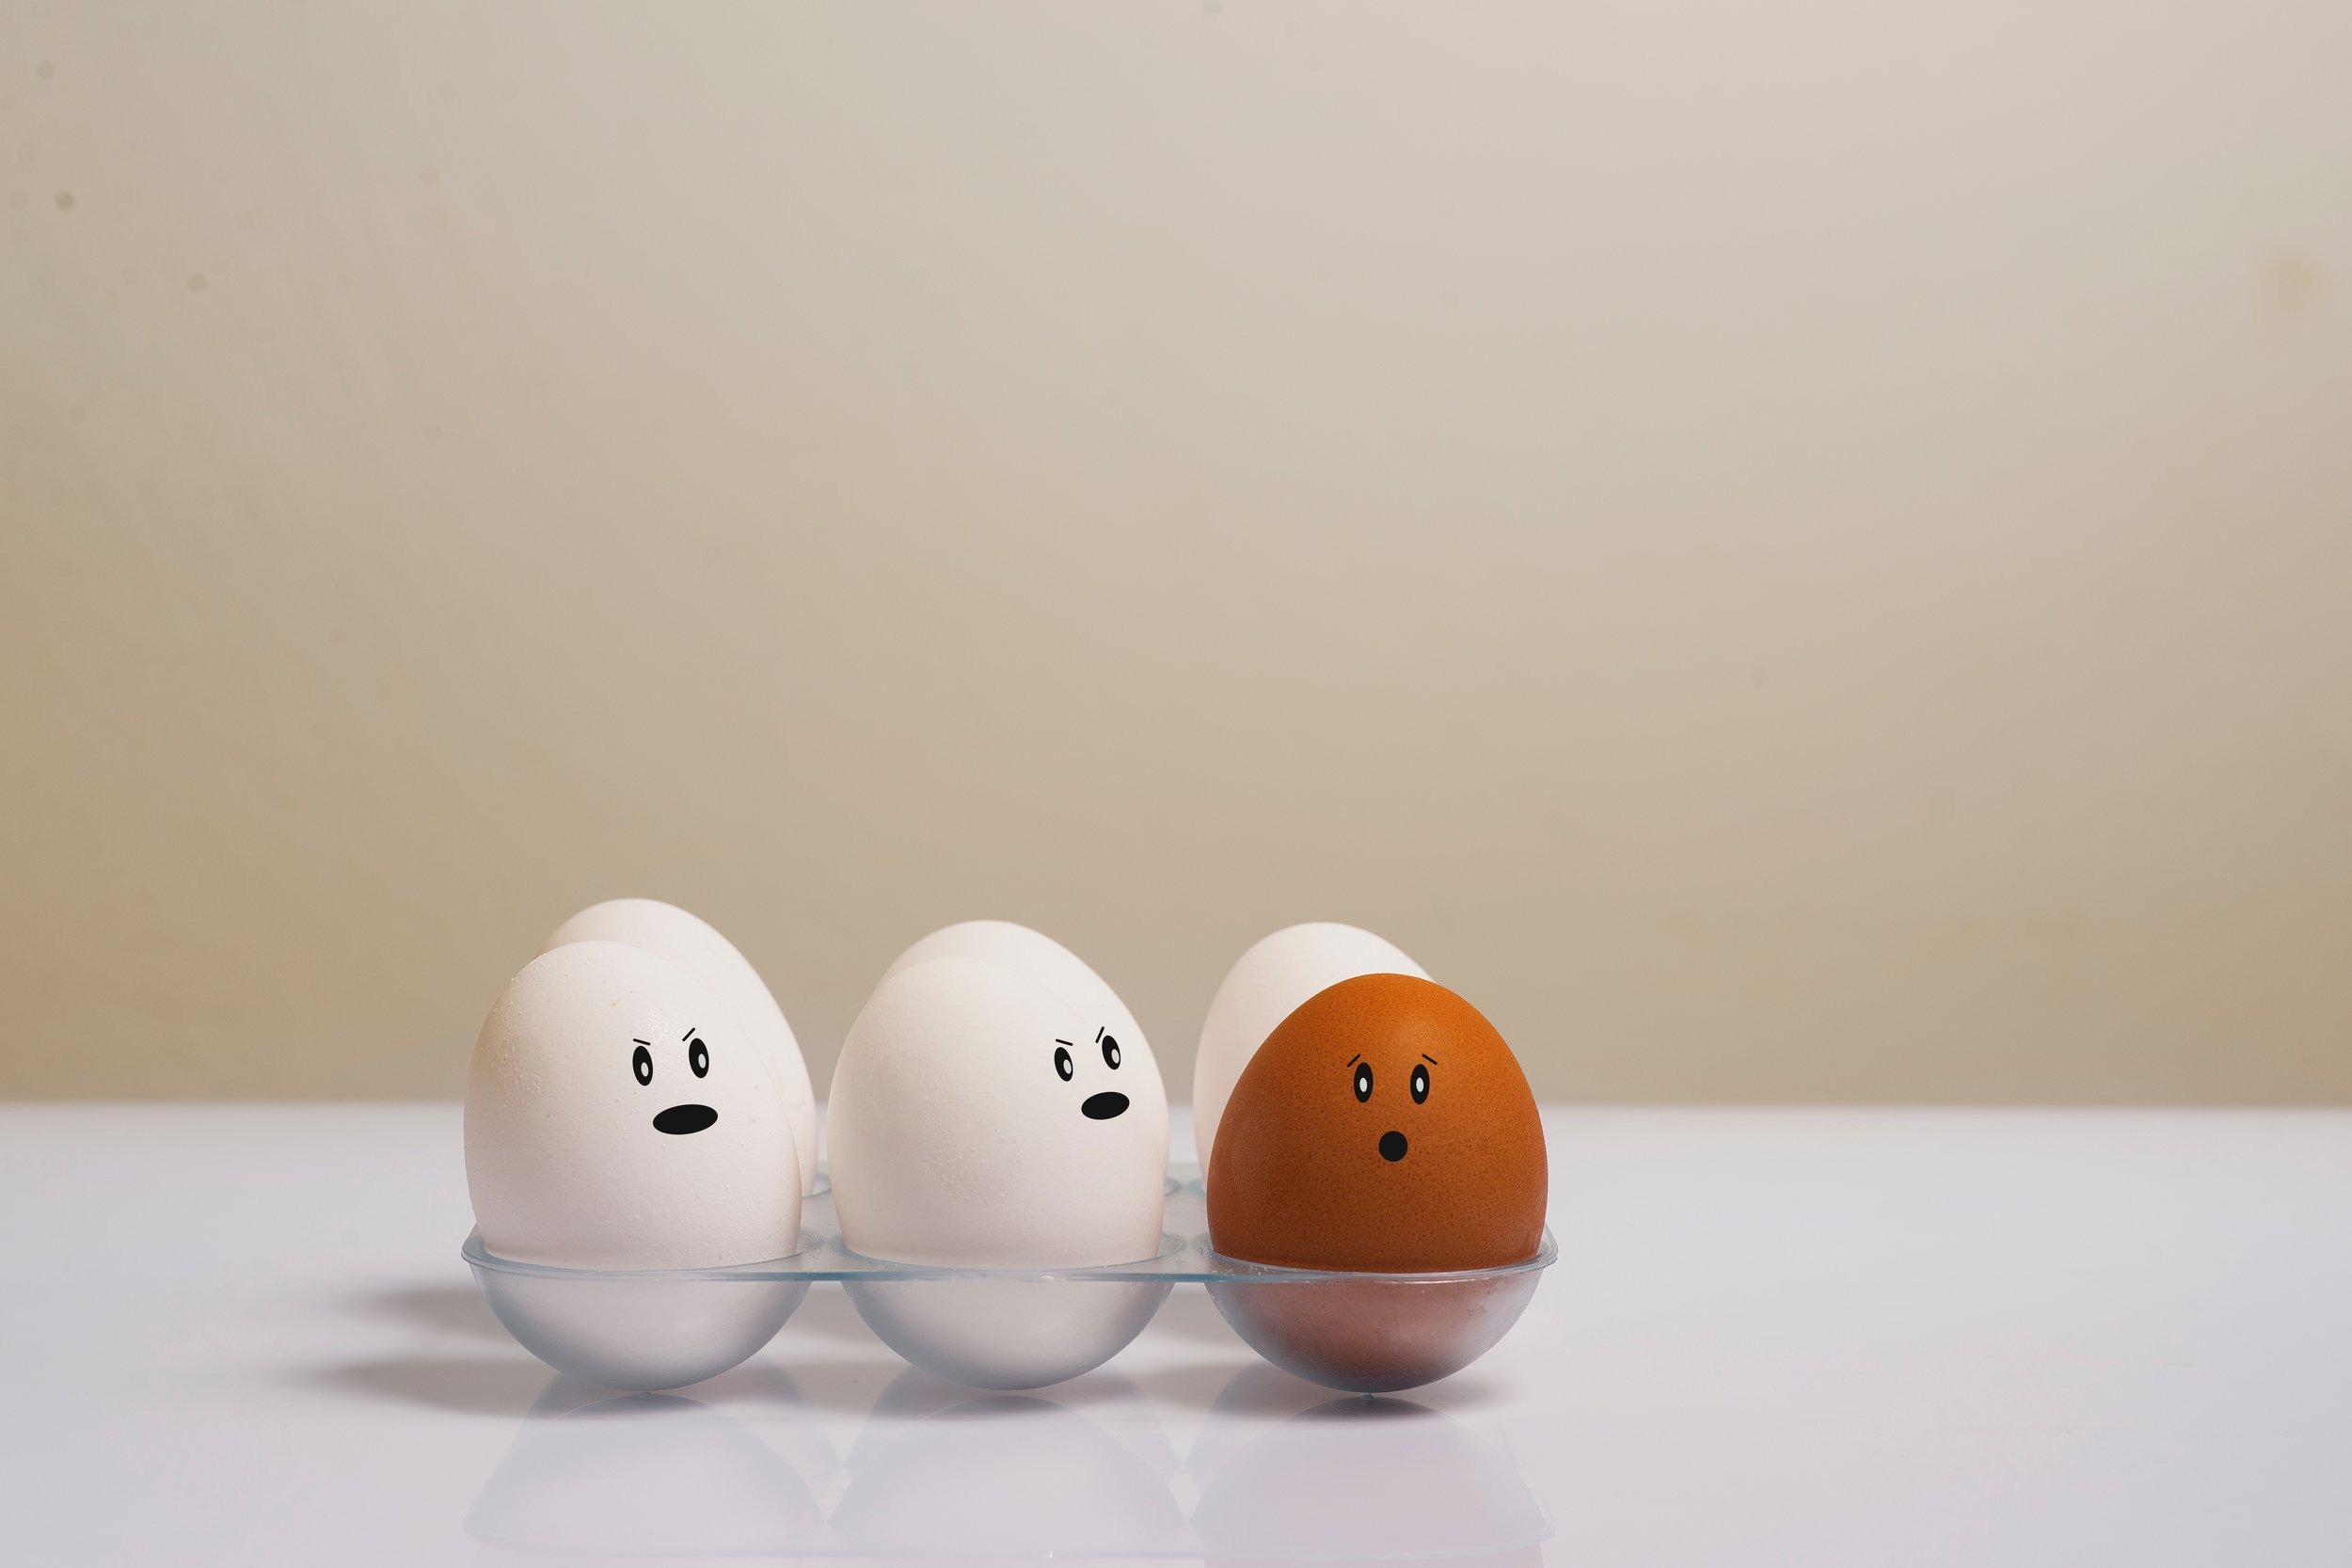 artsy-chicken-eggs-color-1556707.jpg